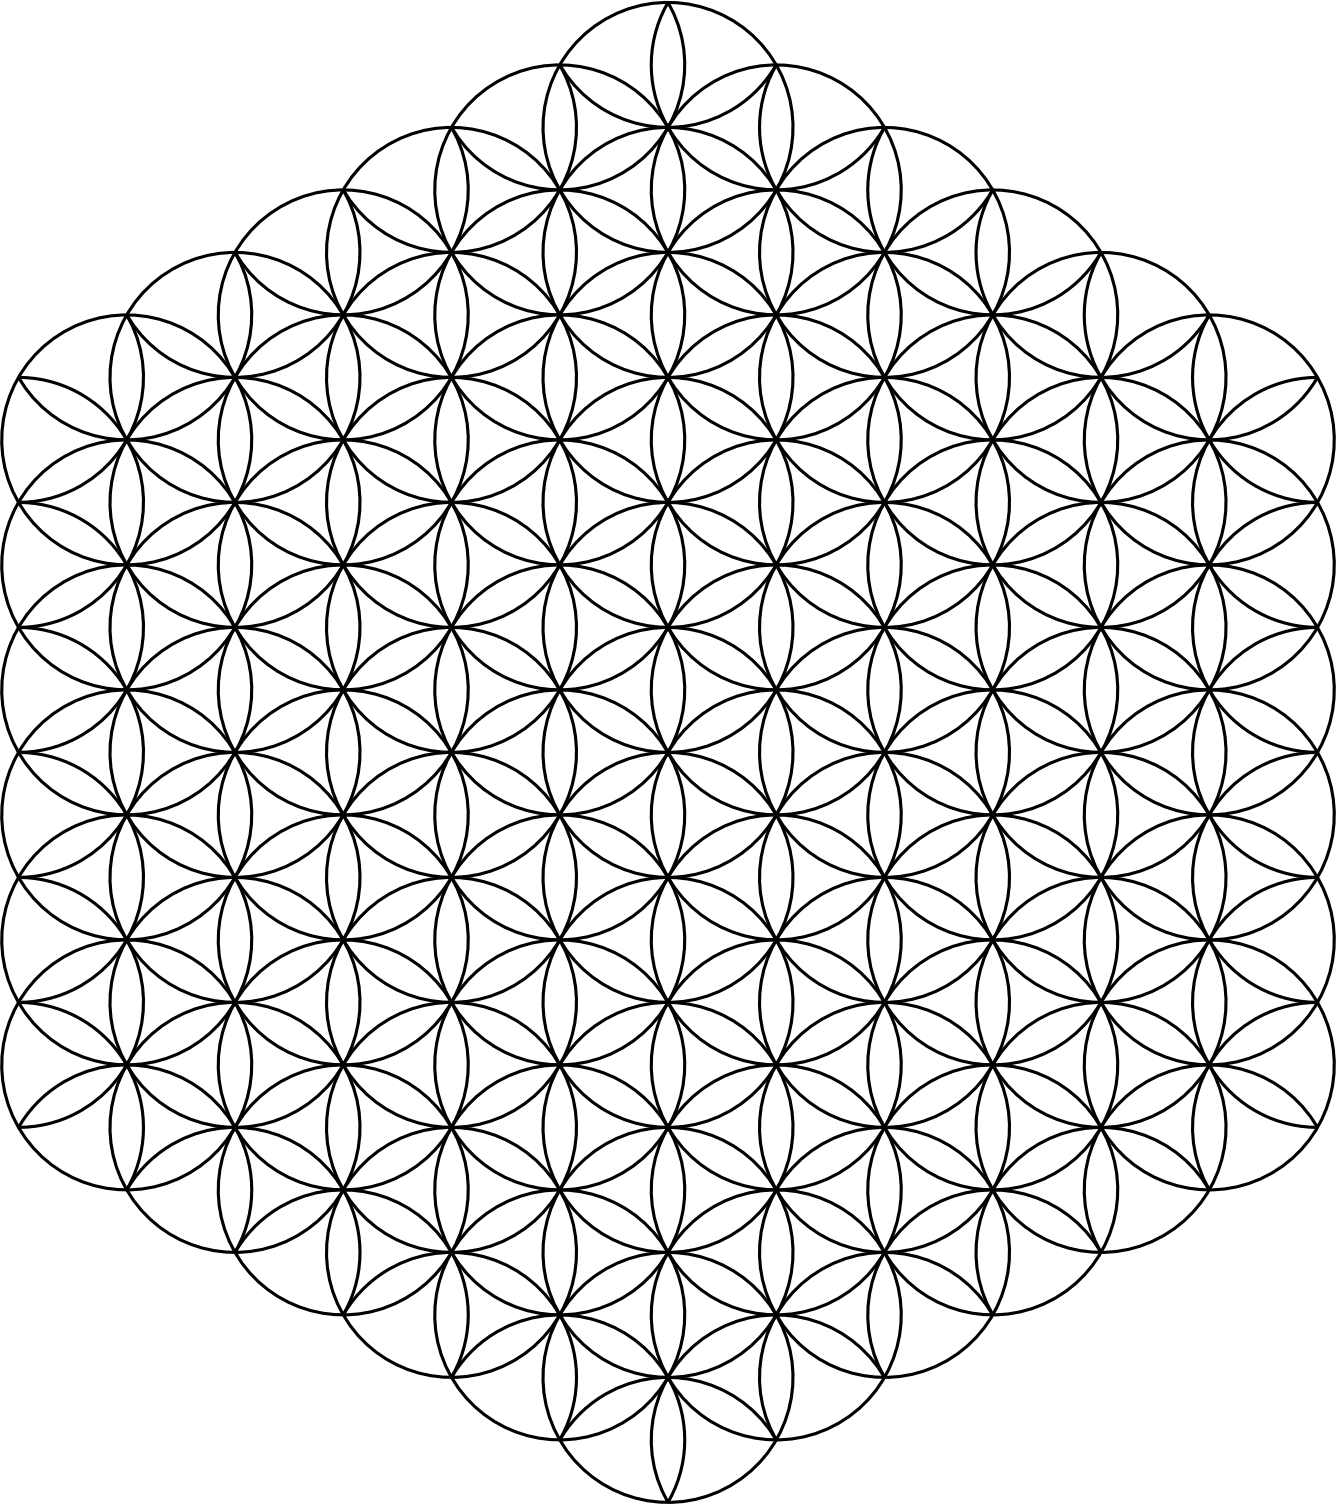 File:Flower-of-Life-91circles36arcs.png - Wikimedia Commons